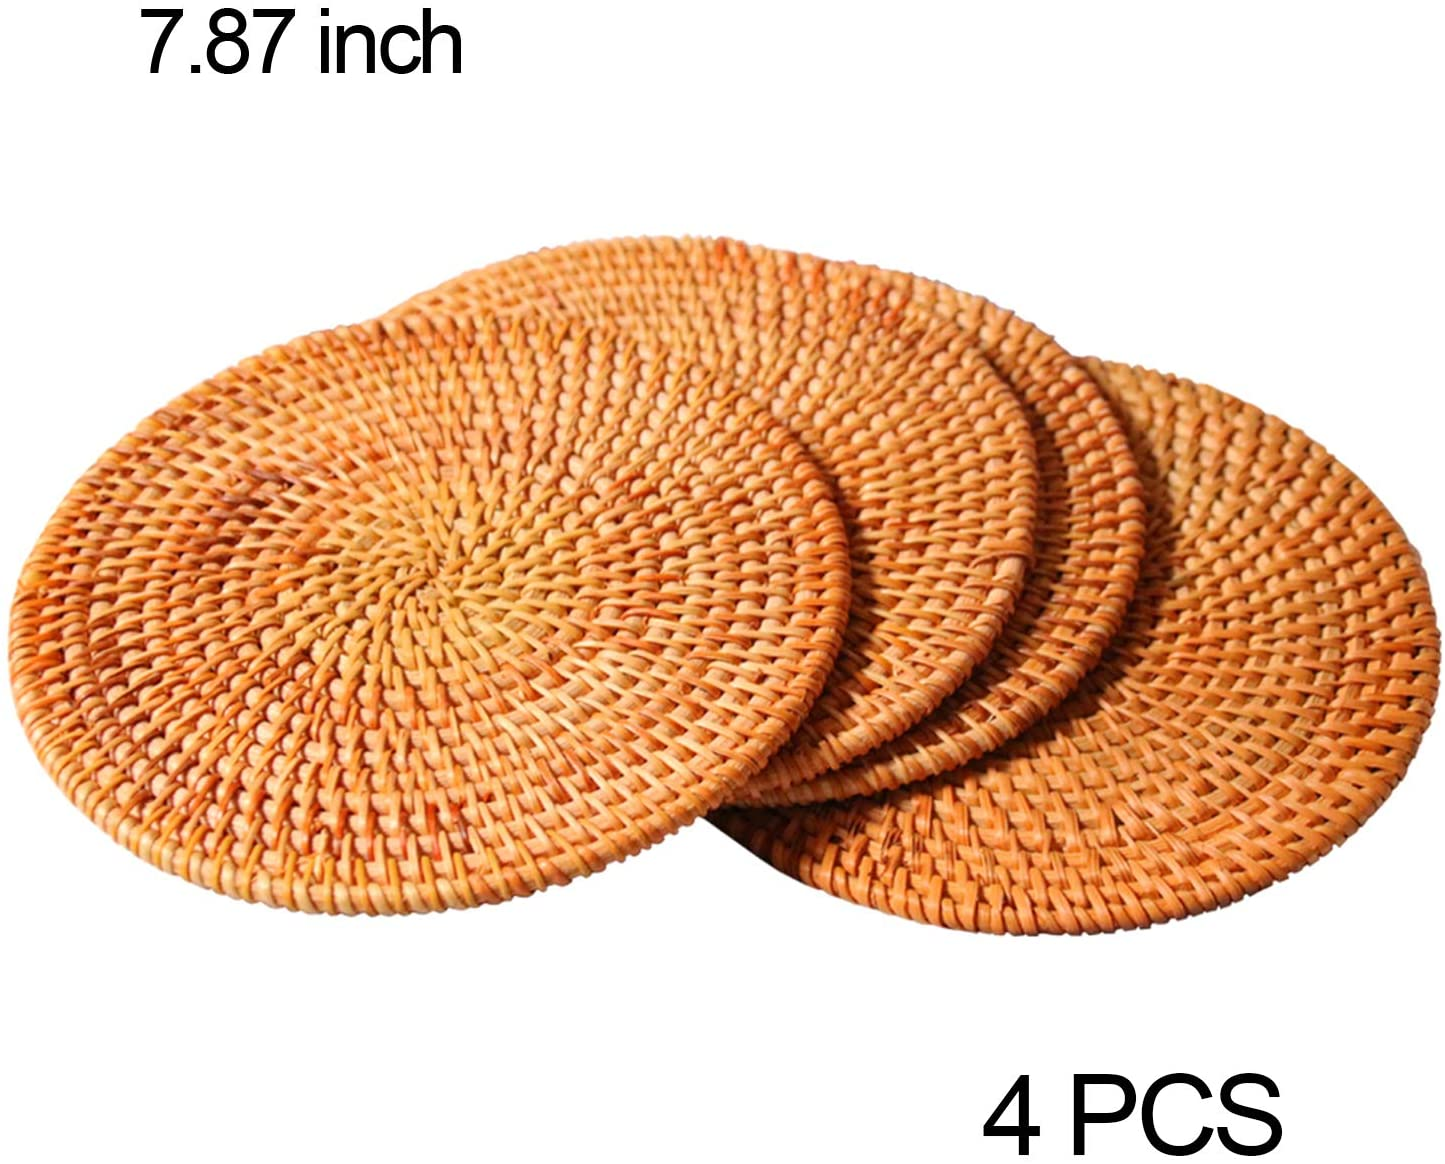 Chainplus 4 Pcs Trivets For Hot Dishes Woven Rattan Trivets Hot Pads For Dinning Table Kitchen Heat Resistant Straw Dish Coasters Placemats Pot Holder 7 87 Inch Walmart Canada